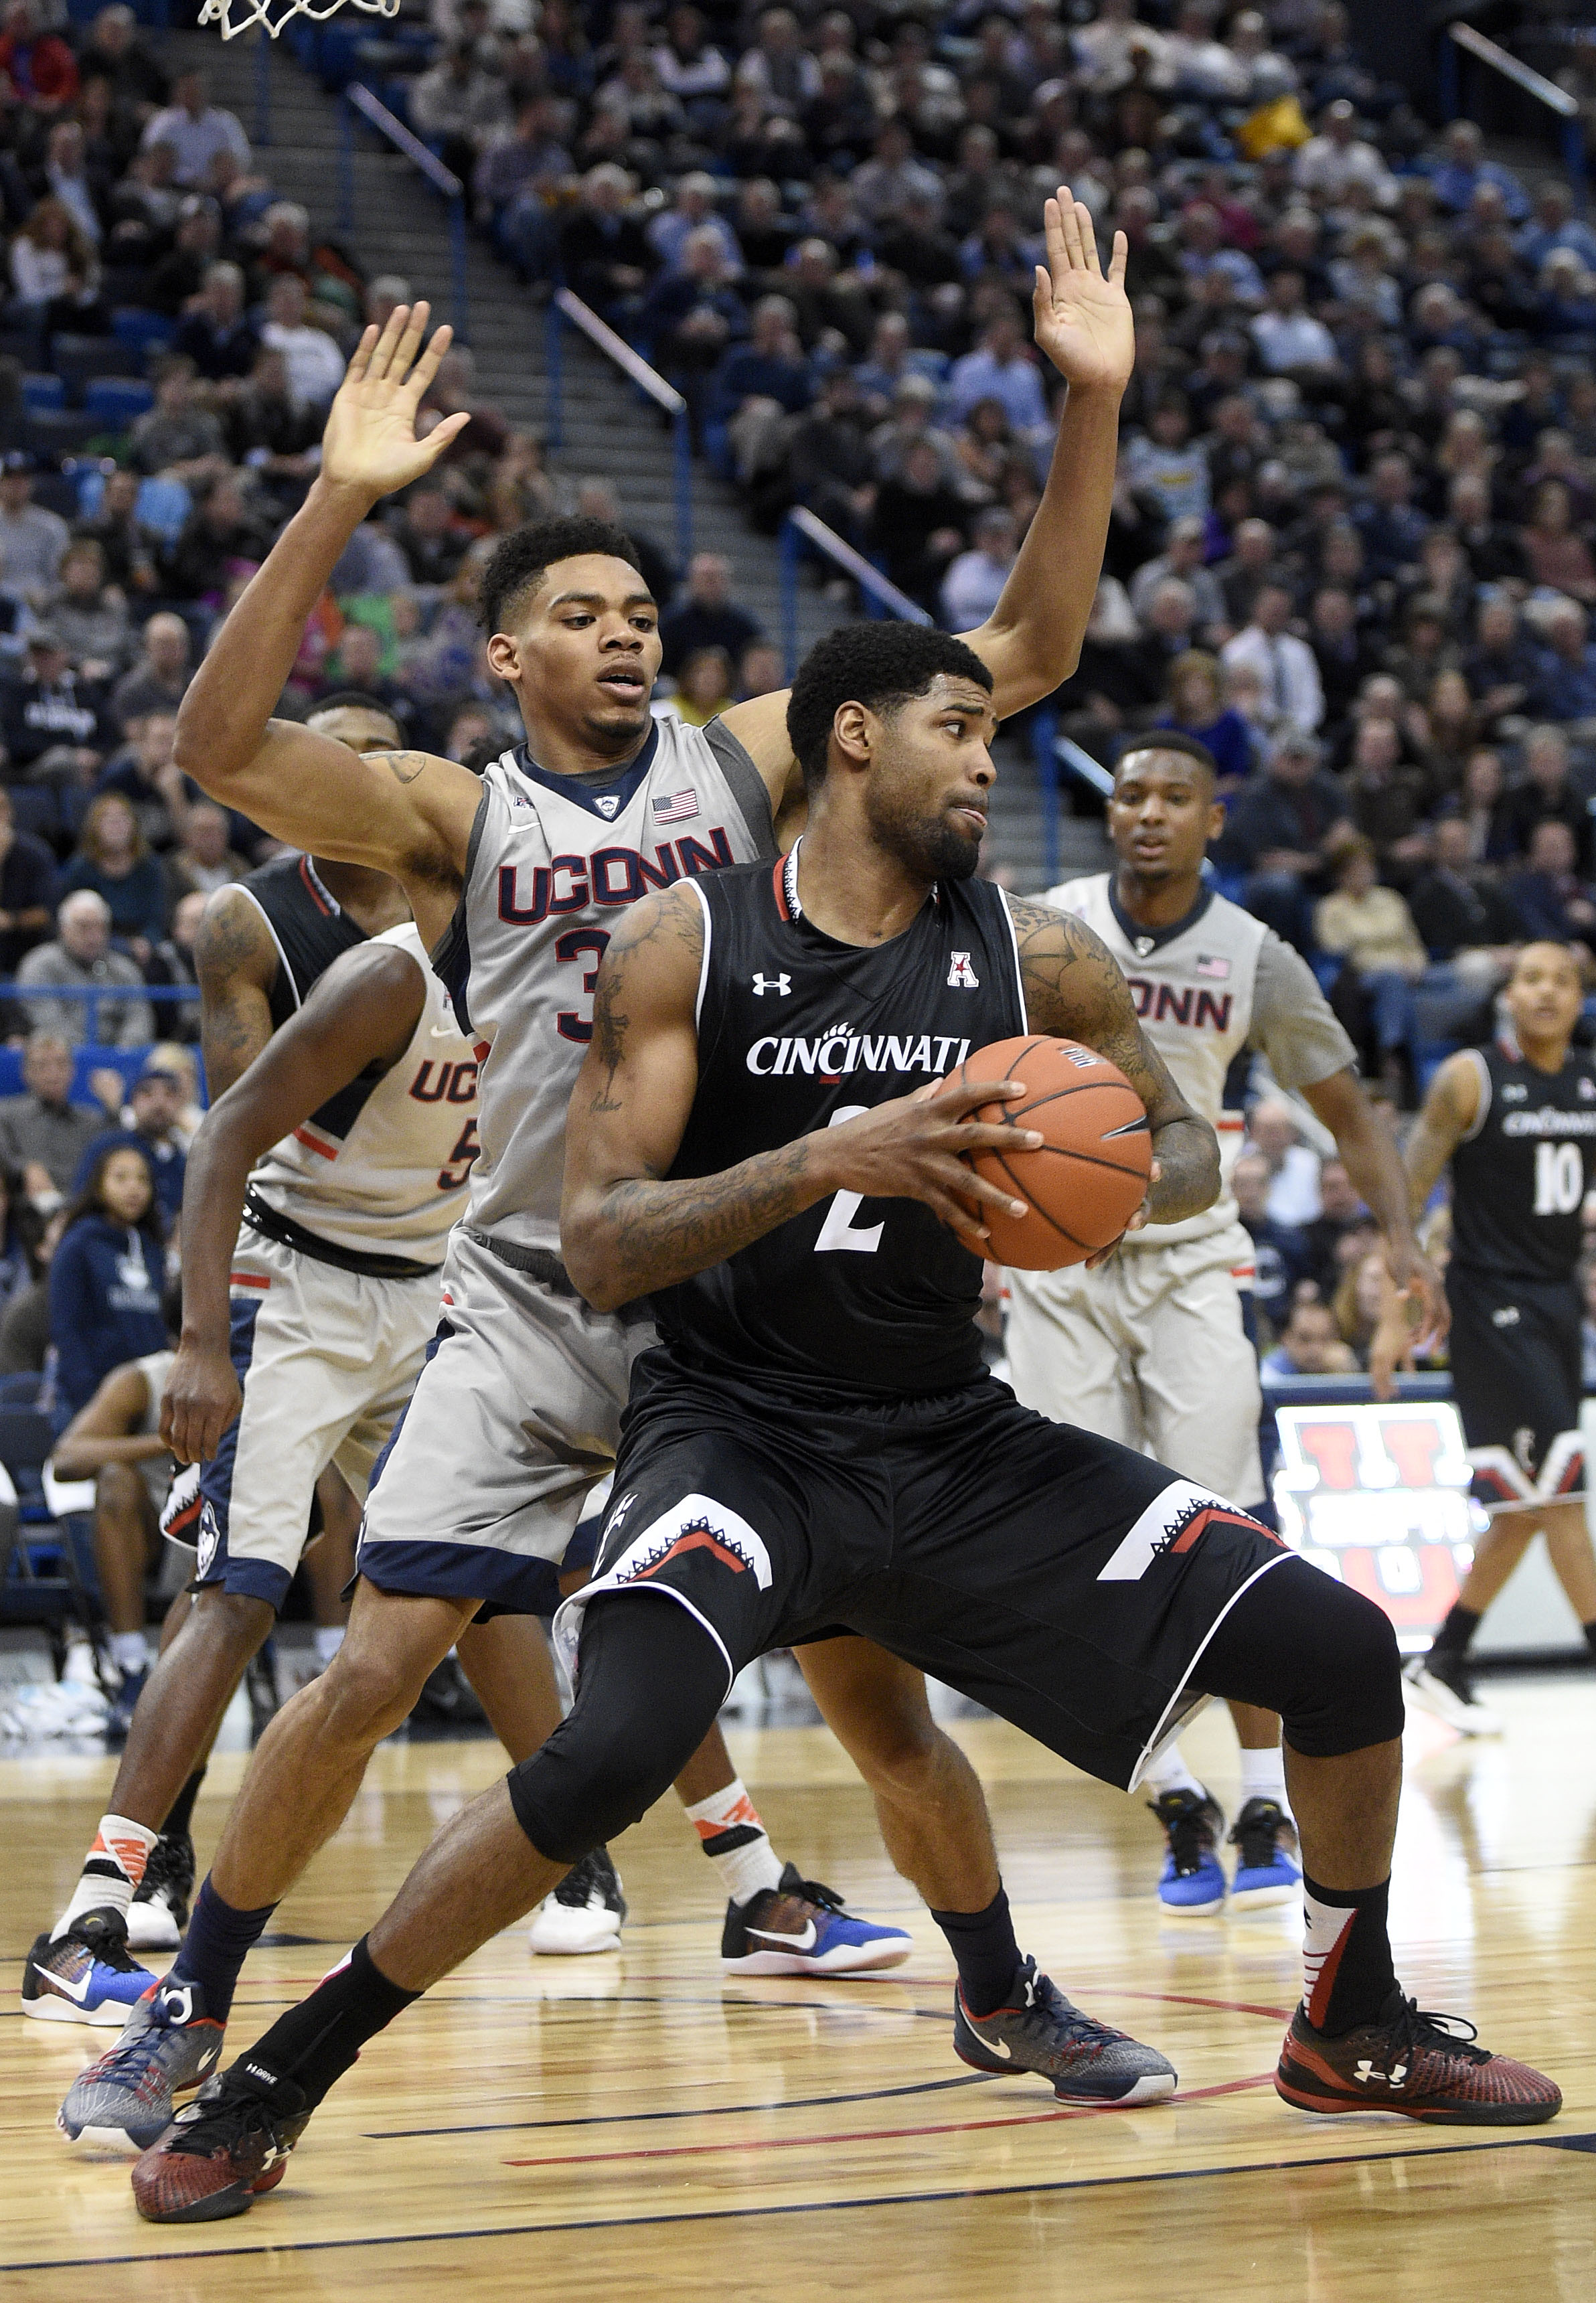 Cincinnati's Octavius Ellis, front, is guarded by Connecticut's Shonn Miller (32) during the first half of an NCAA college basketball game in Hartford, Conn., on Thursday, Jan. 28, 2016. (AP Photo/Fred Beckham)